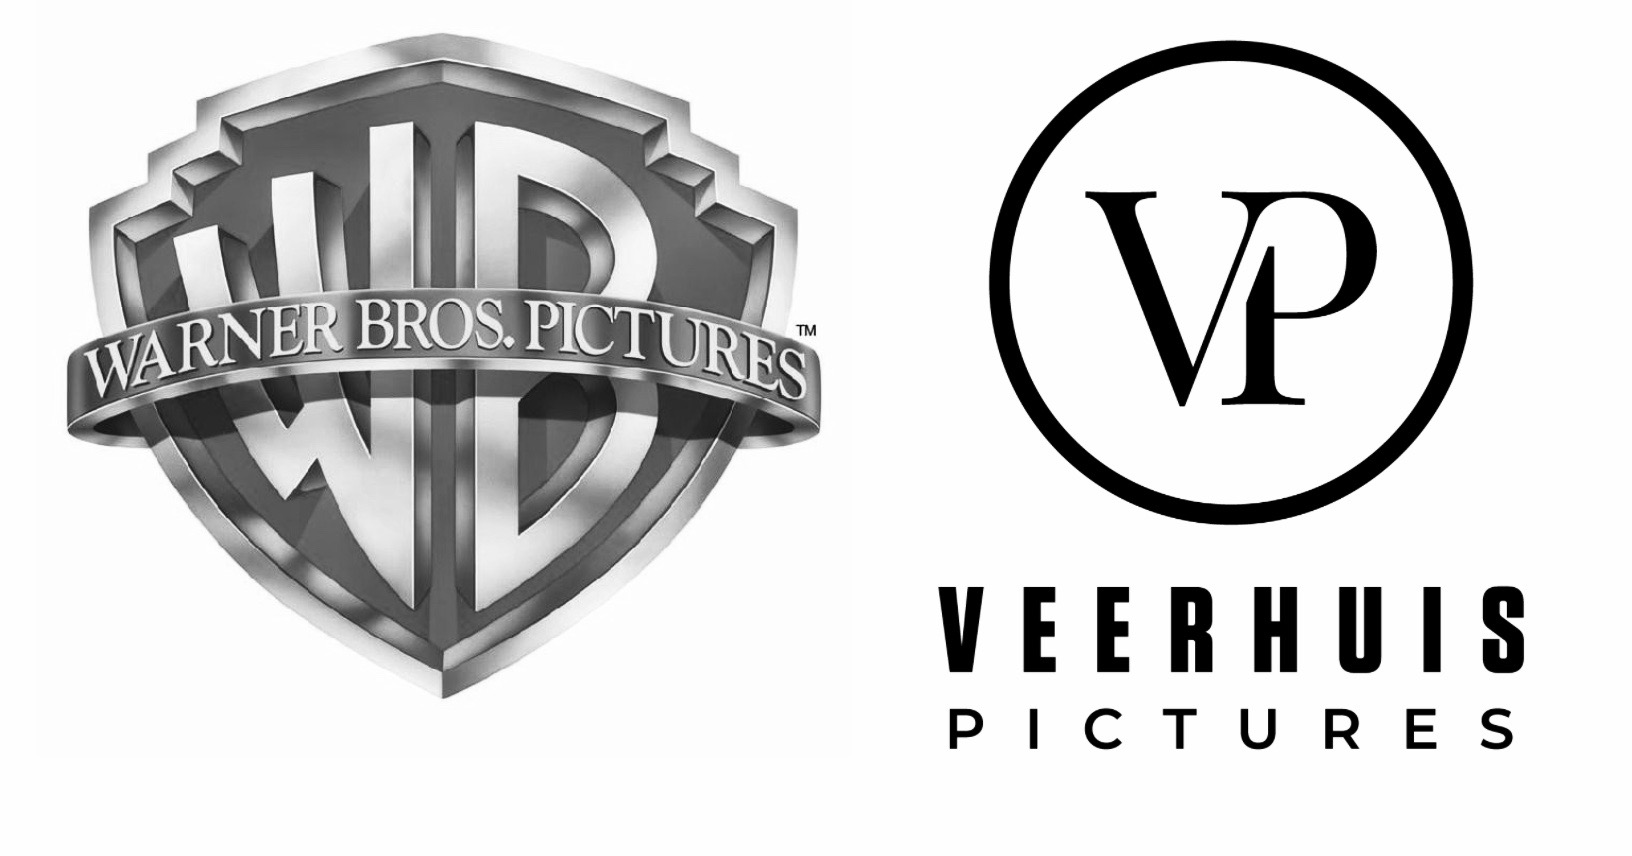 Warner Bros Veerhuis Pictures